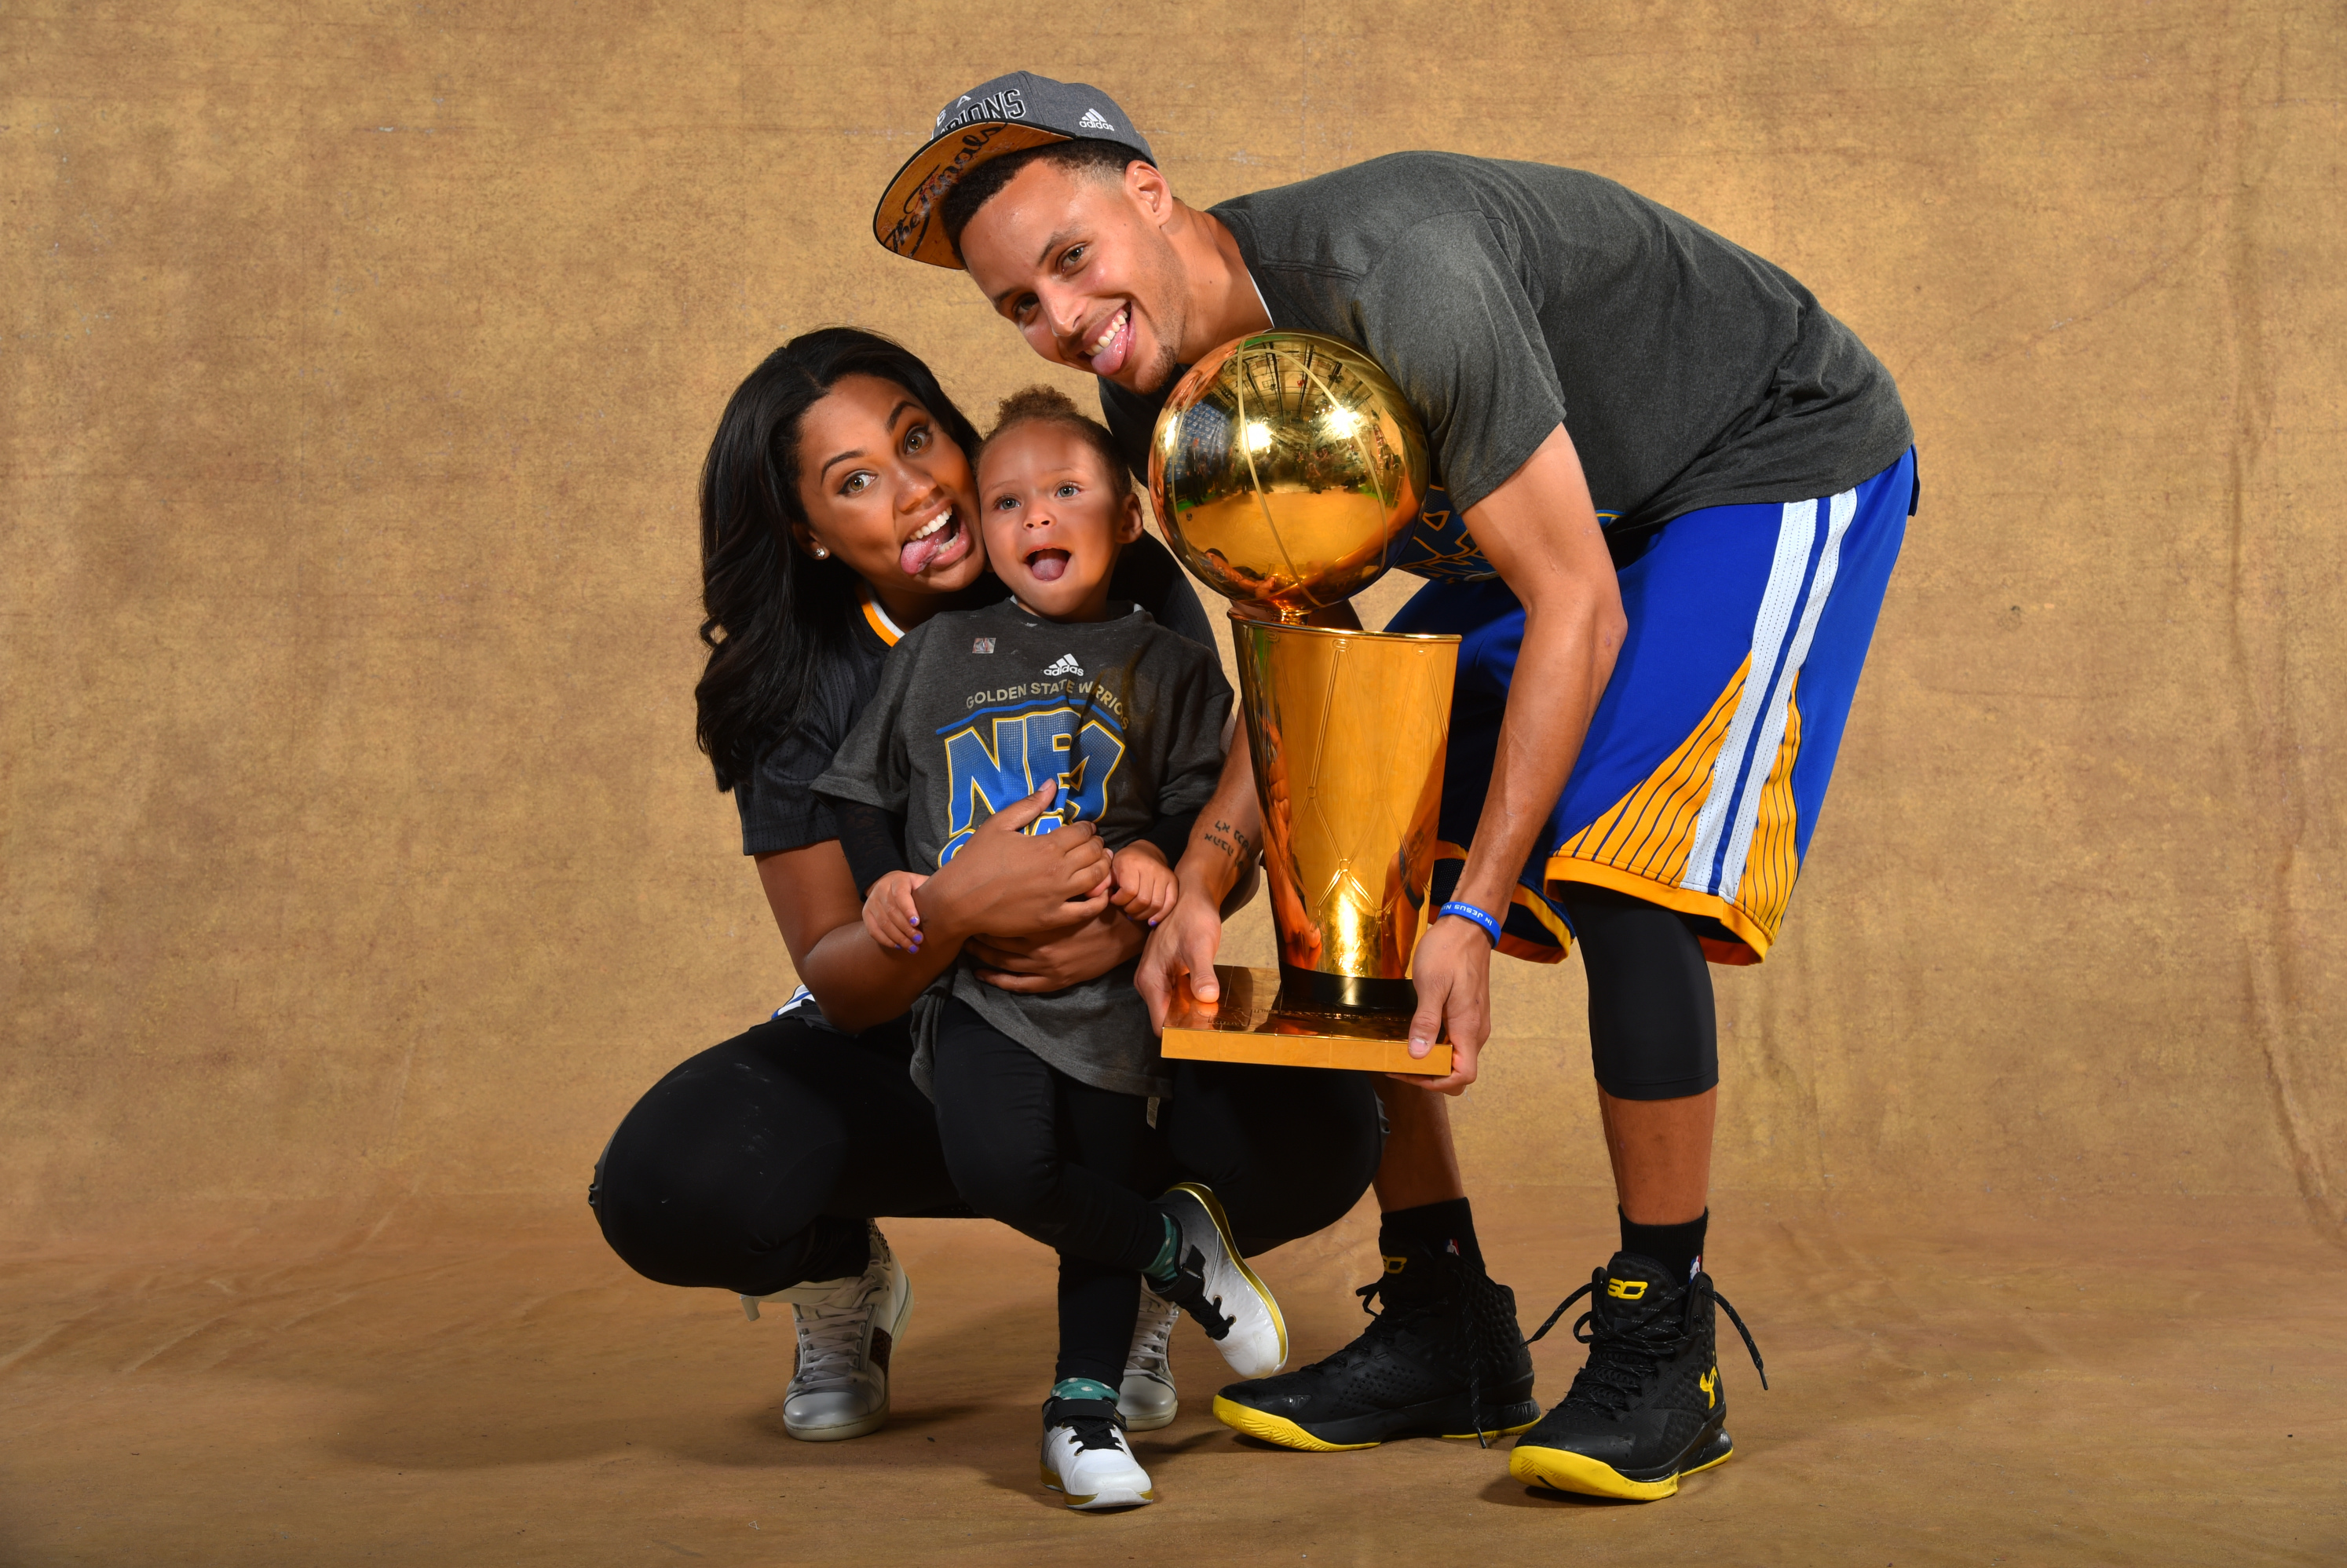 Stephen Curry Recalls He Struck Out 1st Time He Tried To Kiss His Future Wife Bleacher Report Latest News Videos And Highlights